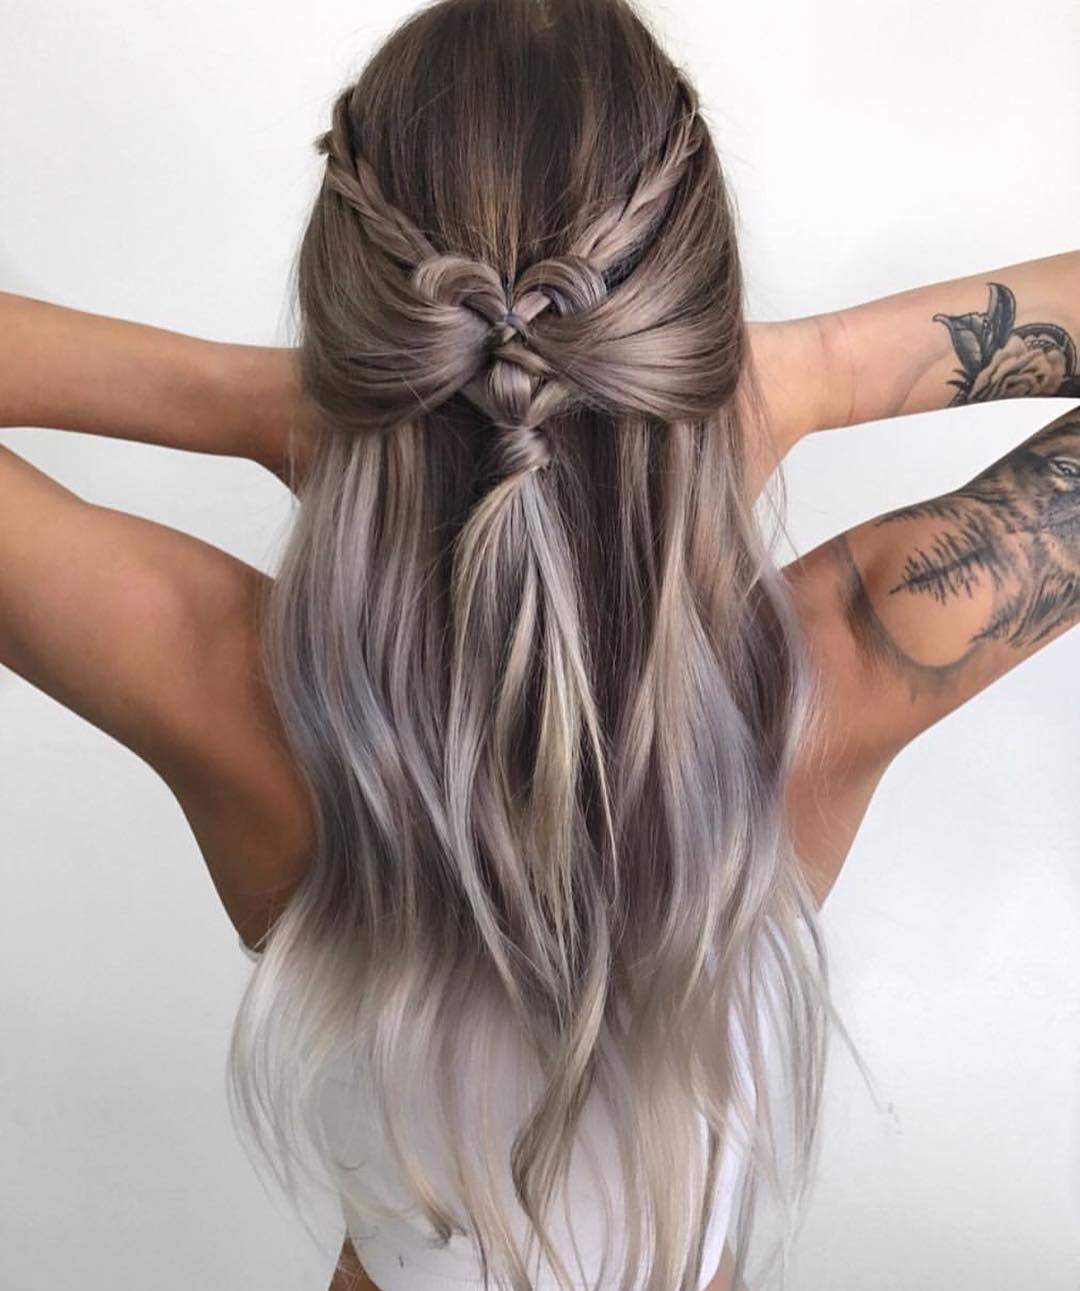 Hairstyle Designs For Long Hair trendy styles